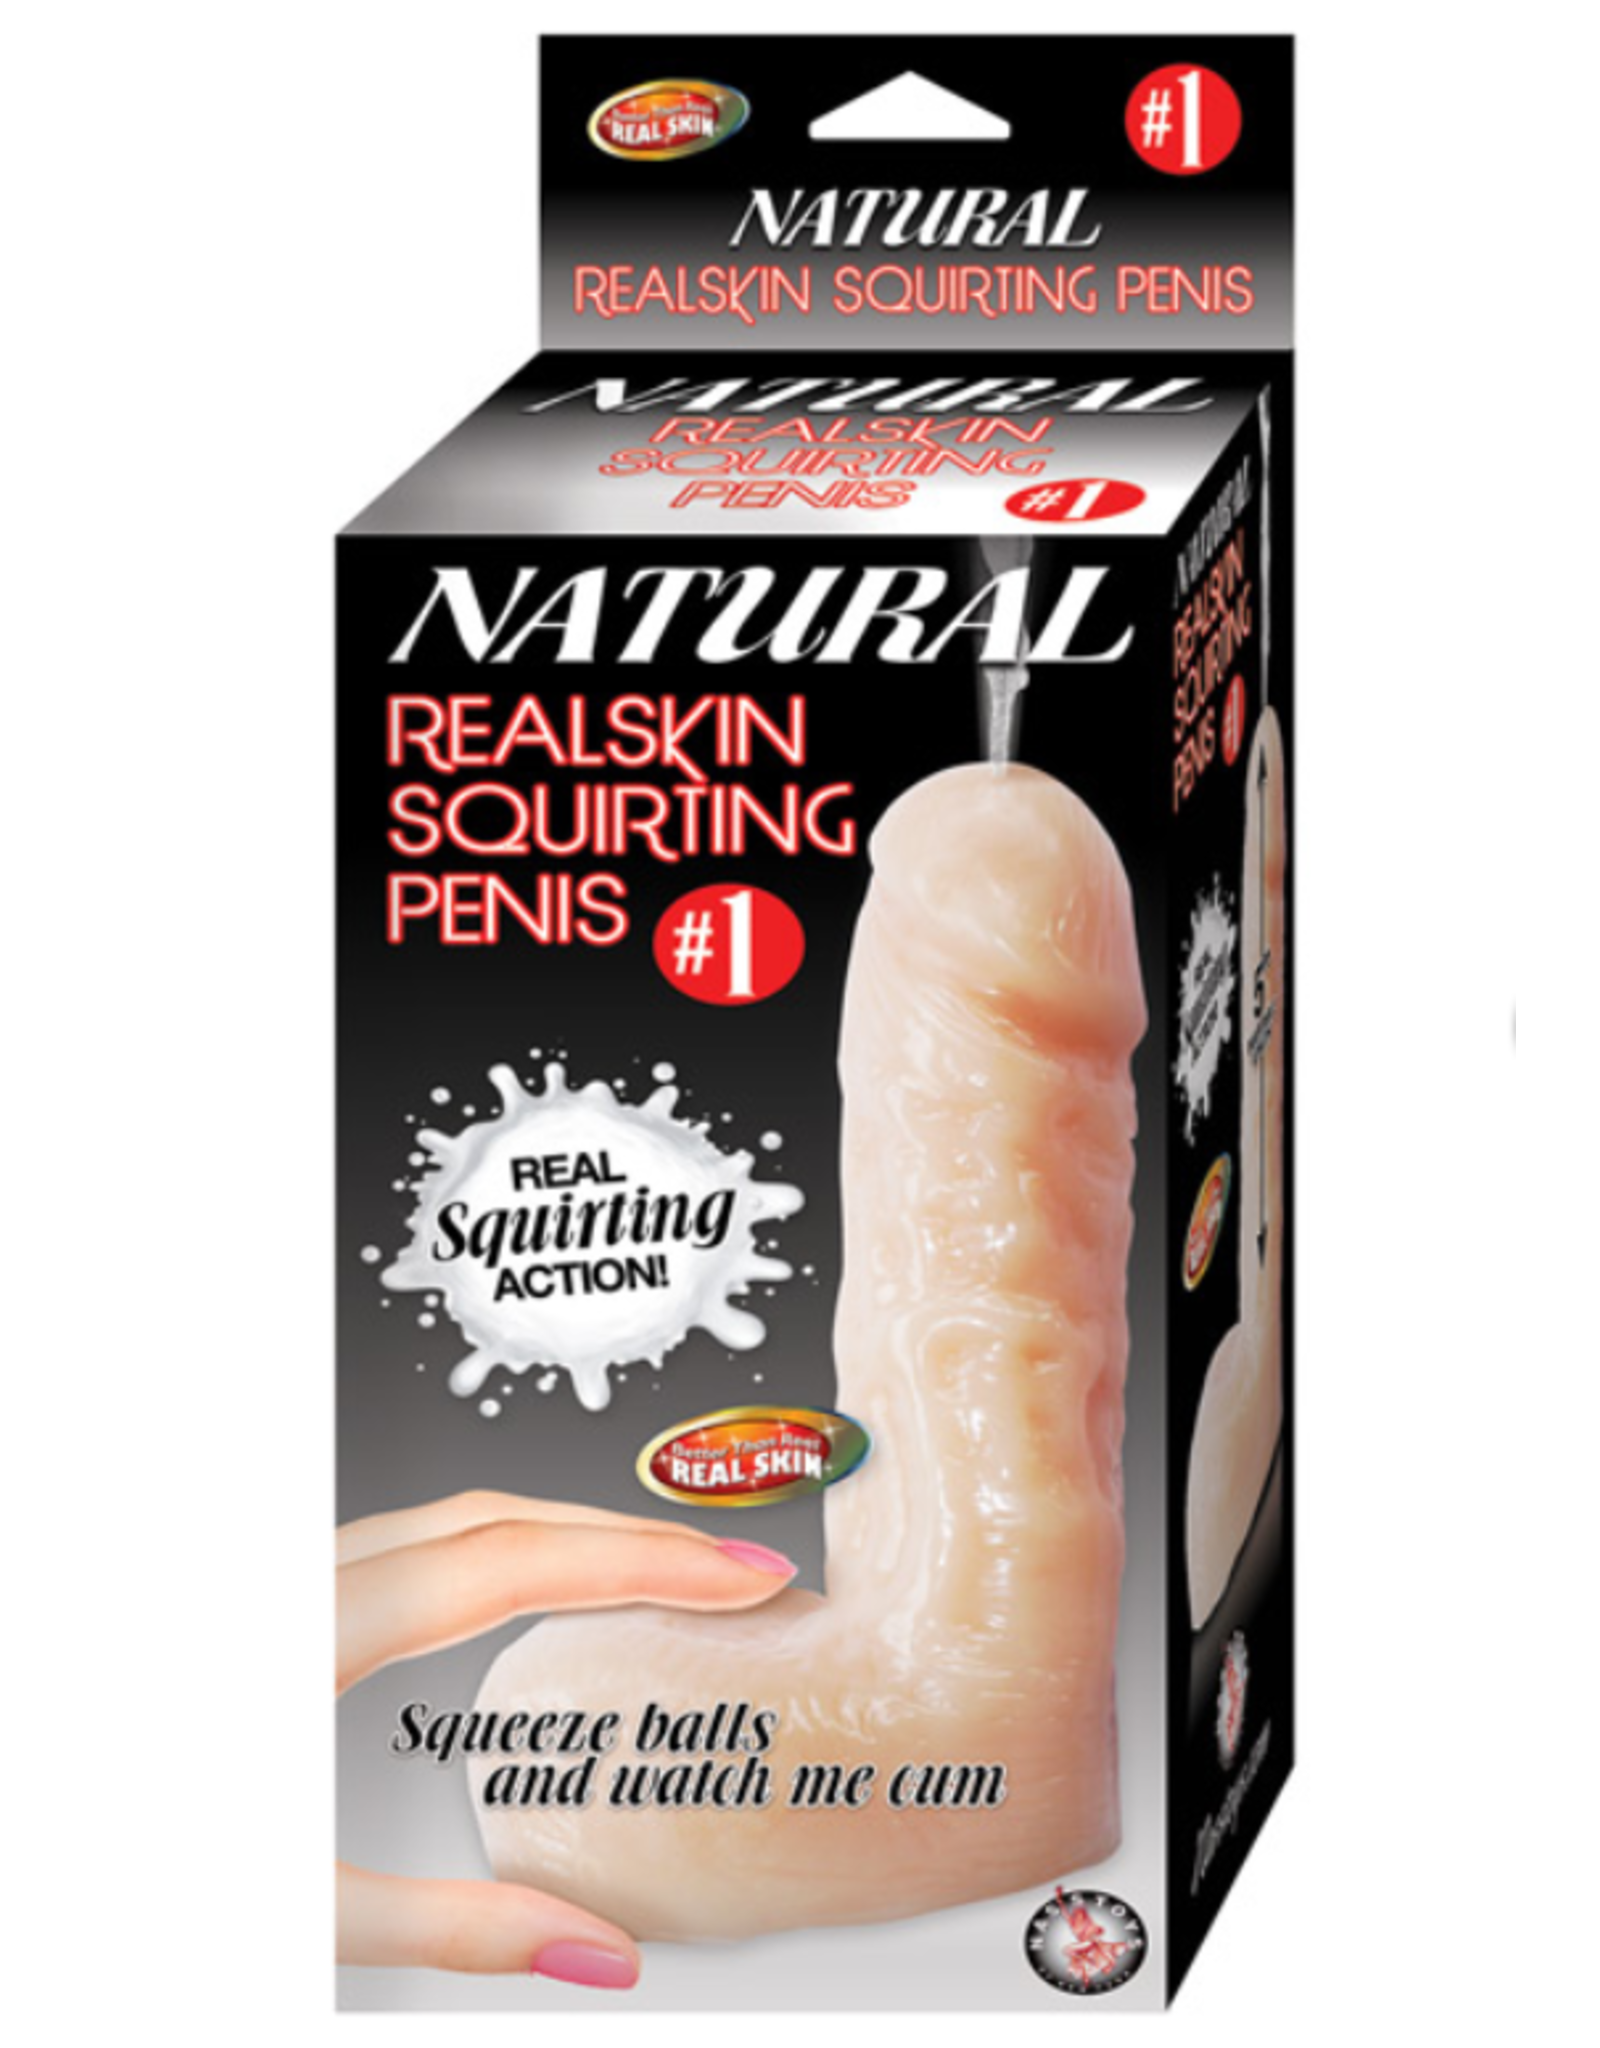 Natural Realskin Squirting Penis Brown